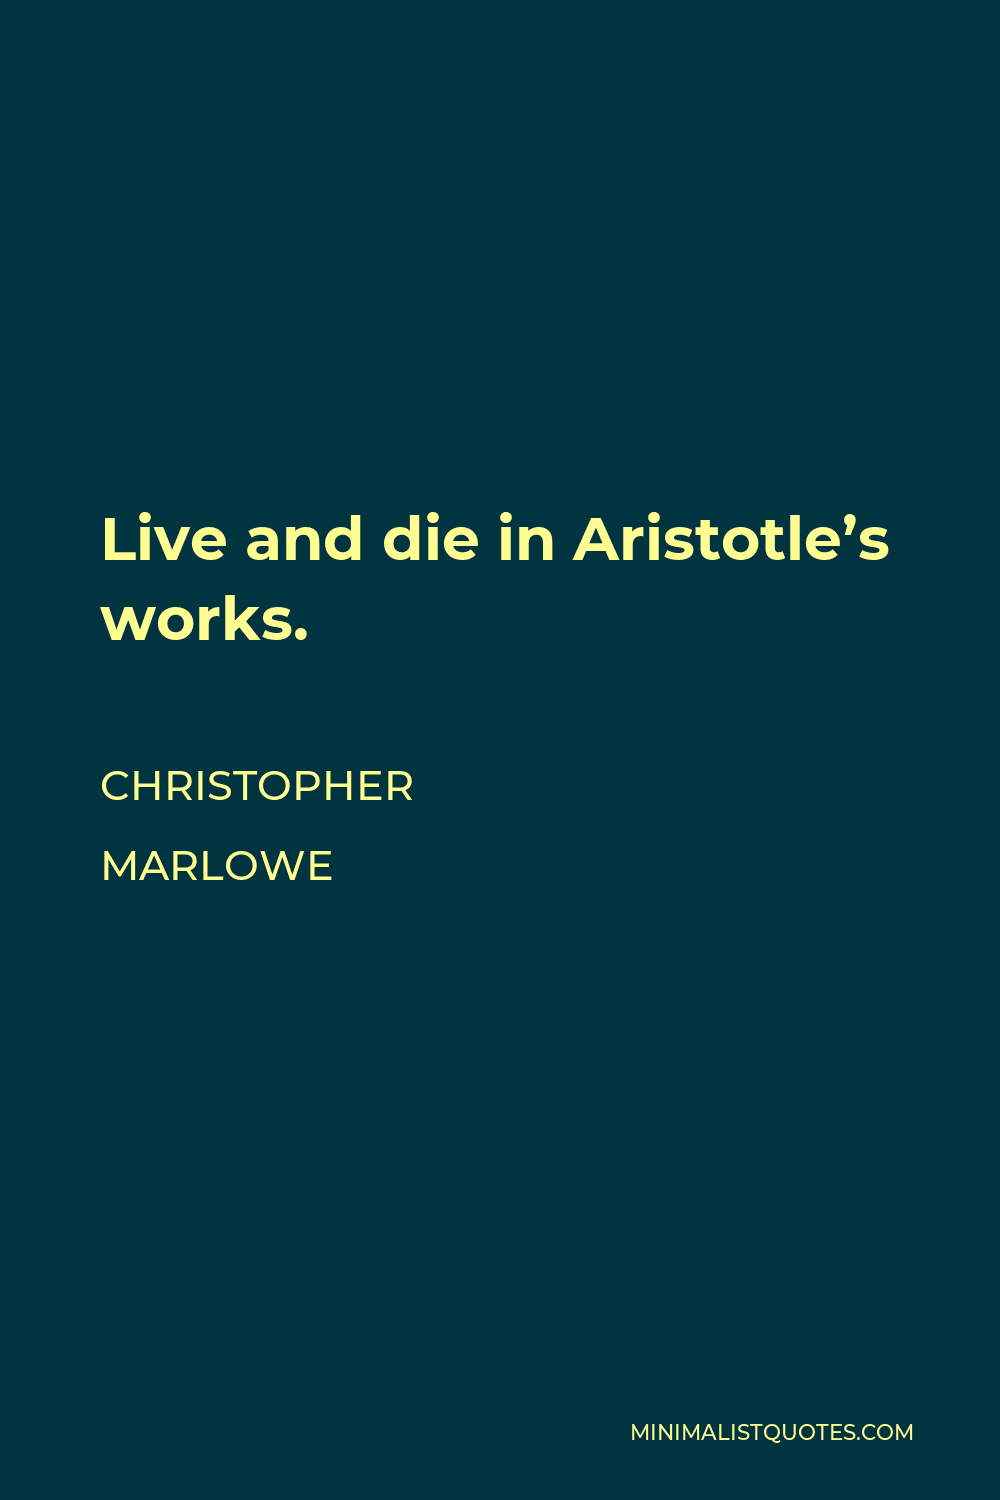 Christopher Marlowe Quote - Live and die in Aristotle's works.